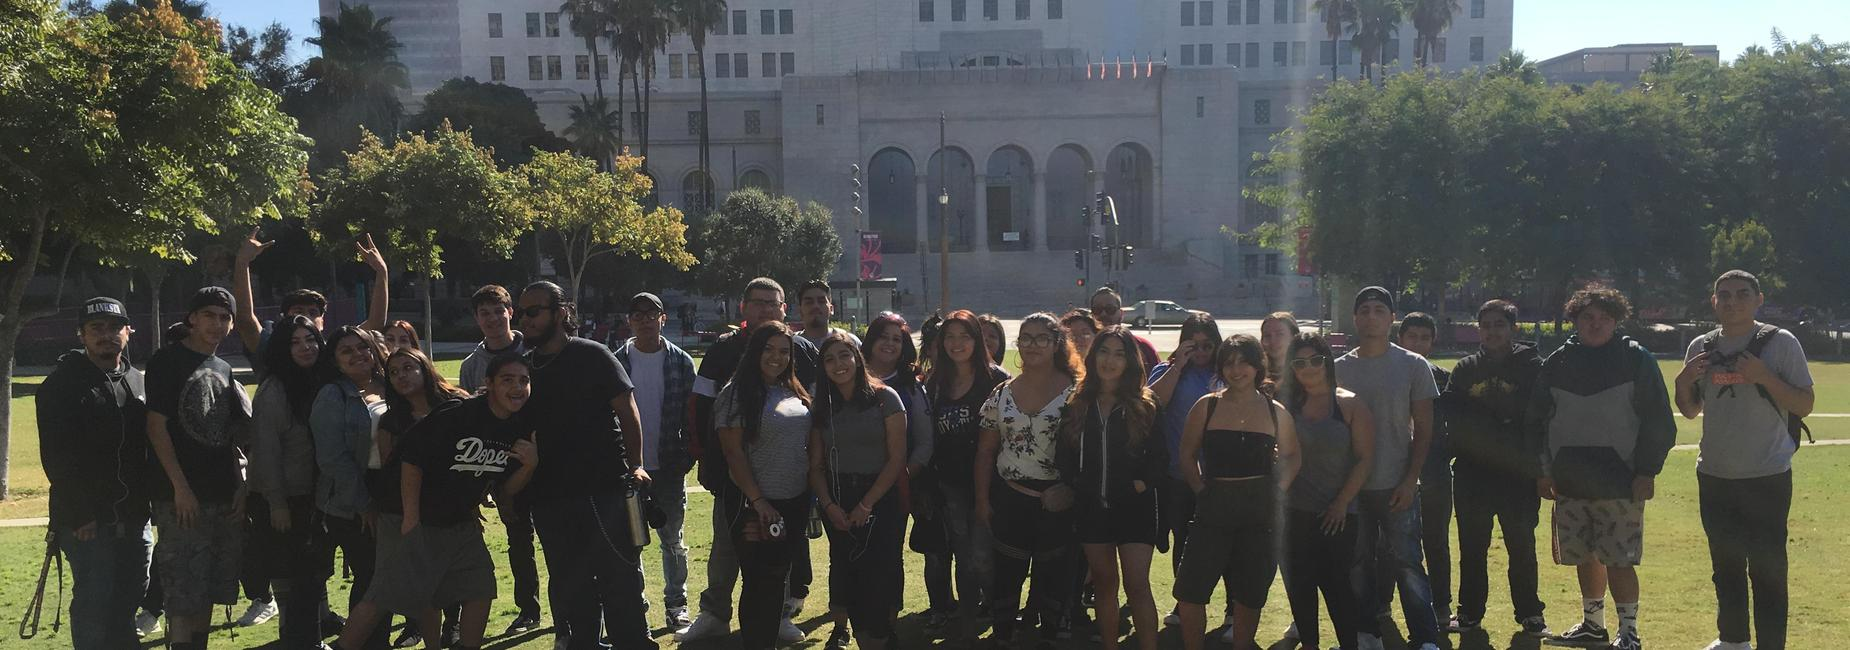 Students and Staff pose for photo in Los Angeles